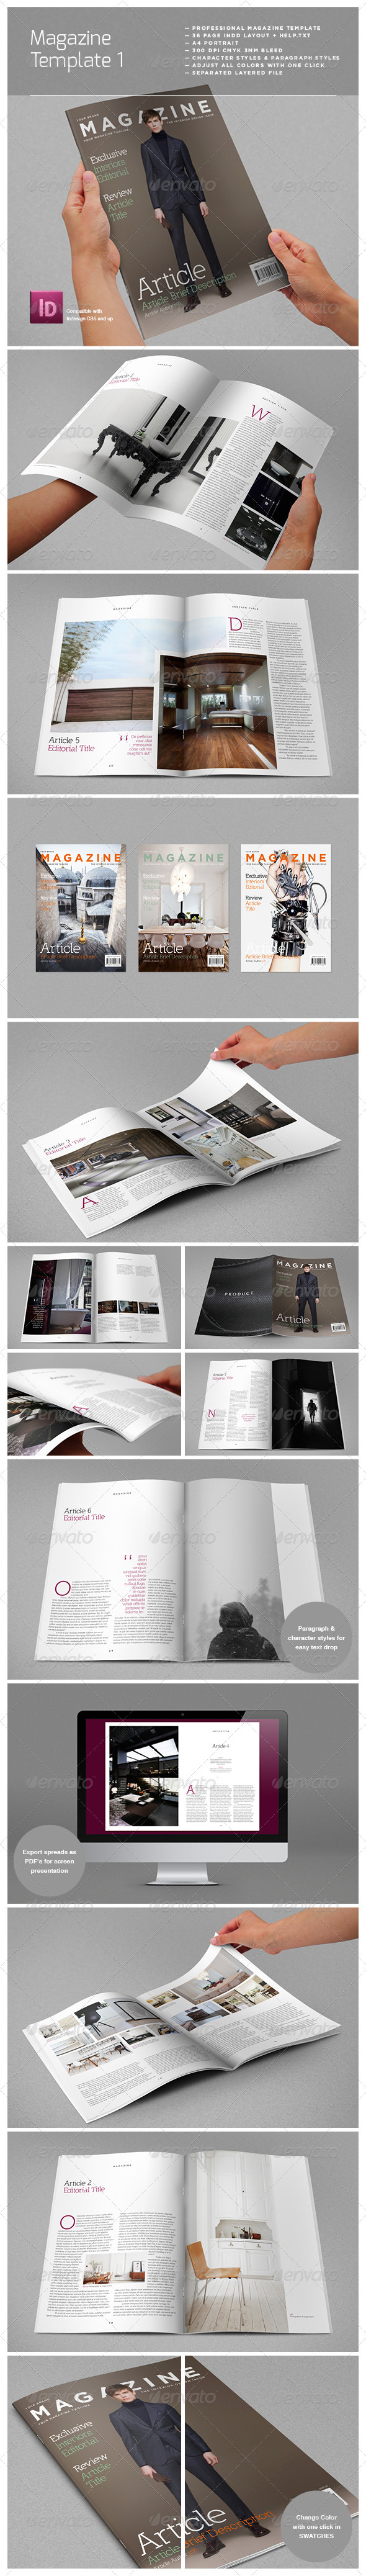 Magazine Complete Template - Magazines Print Templates